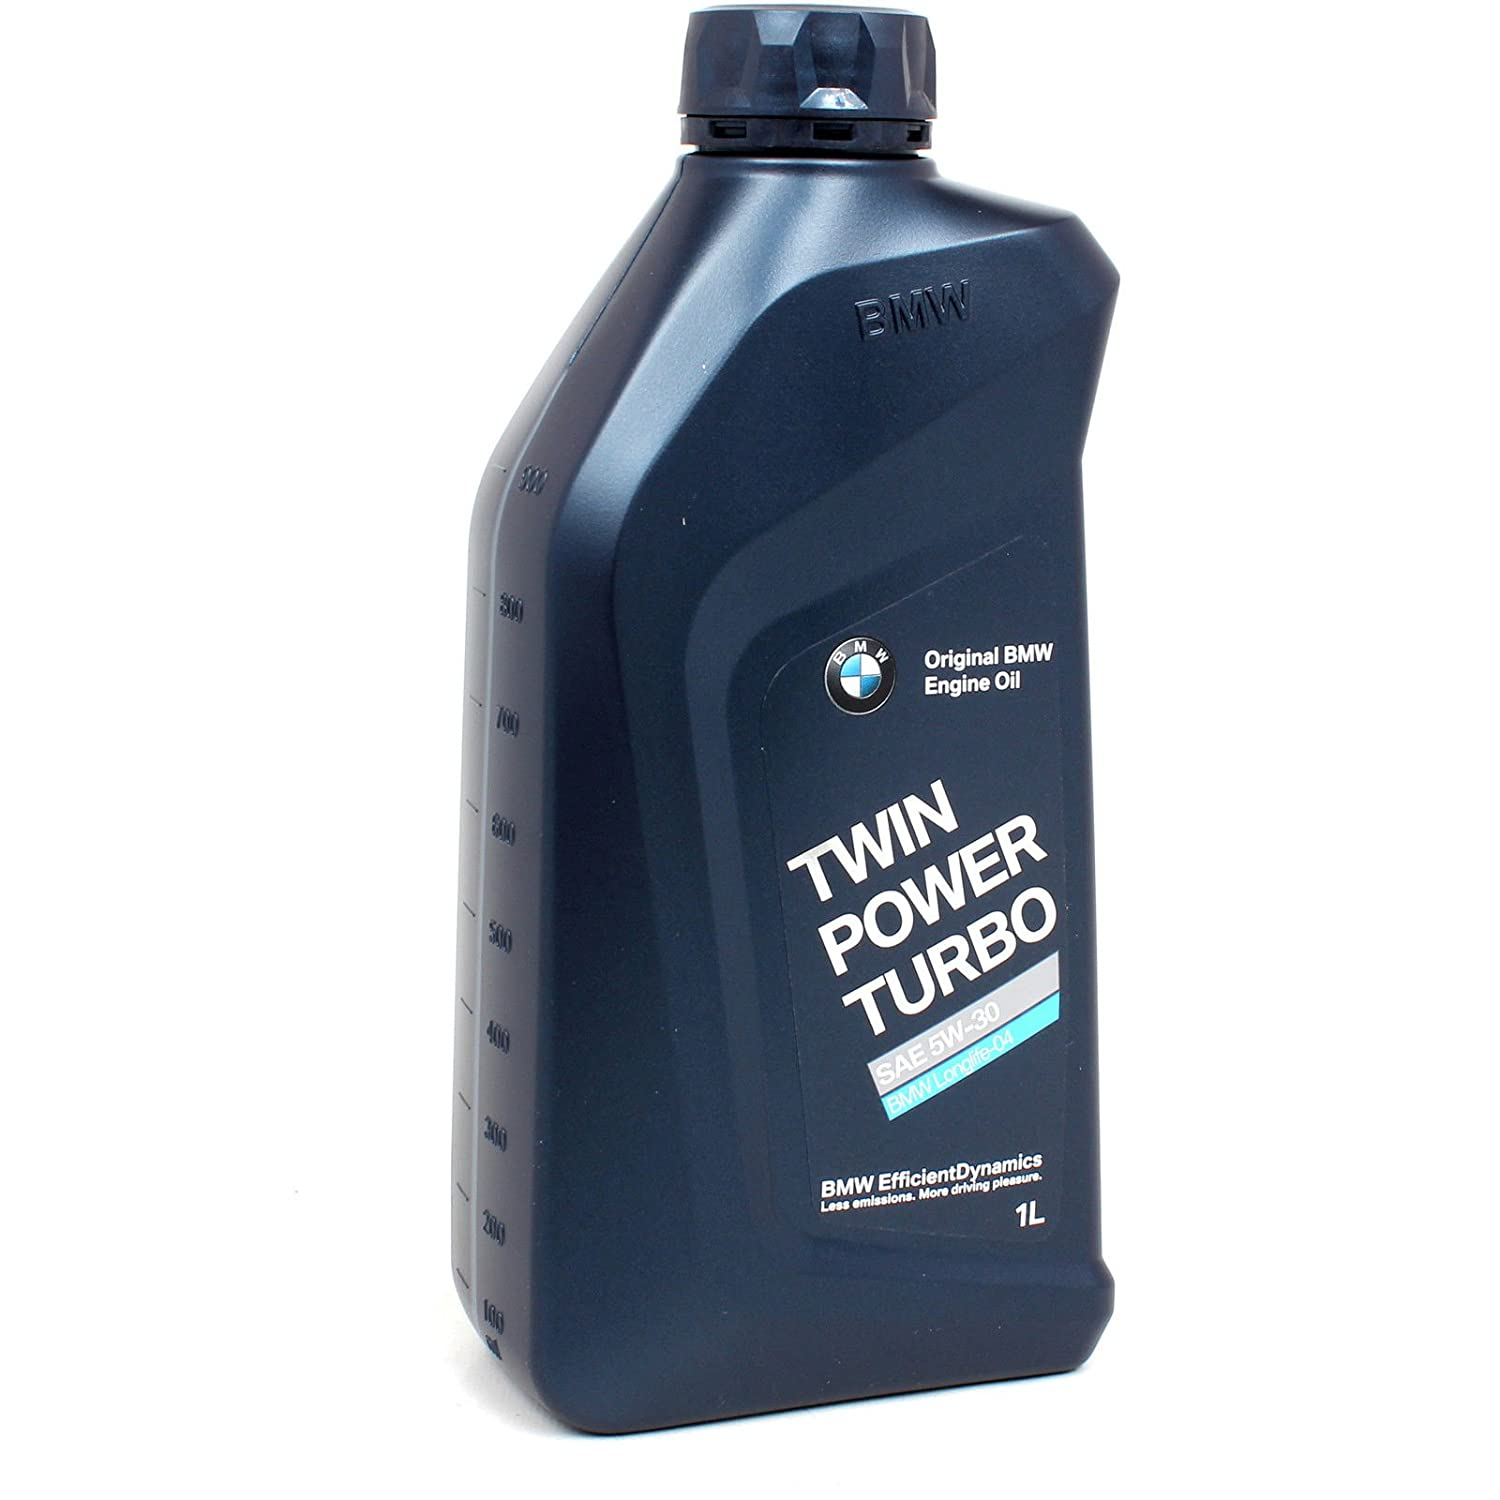 BMW 83 21 2 365 933 TwinPower Turbo - Aceite para Motor (LL-04 5W-30), 1 L: Amazon.es: Coche y moto